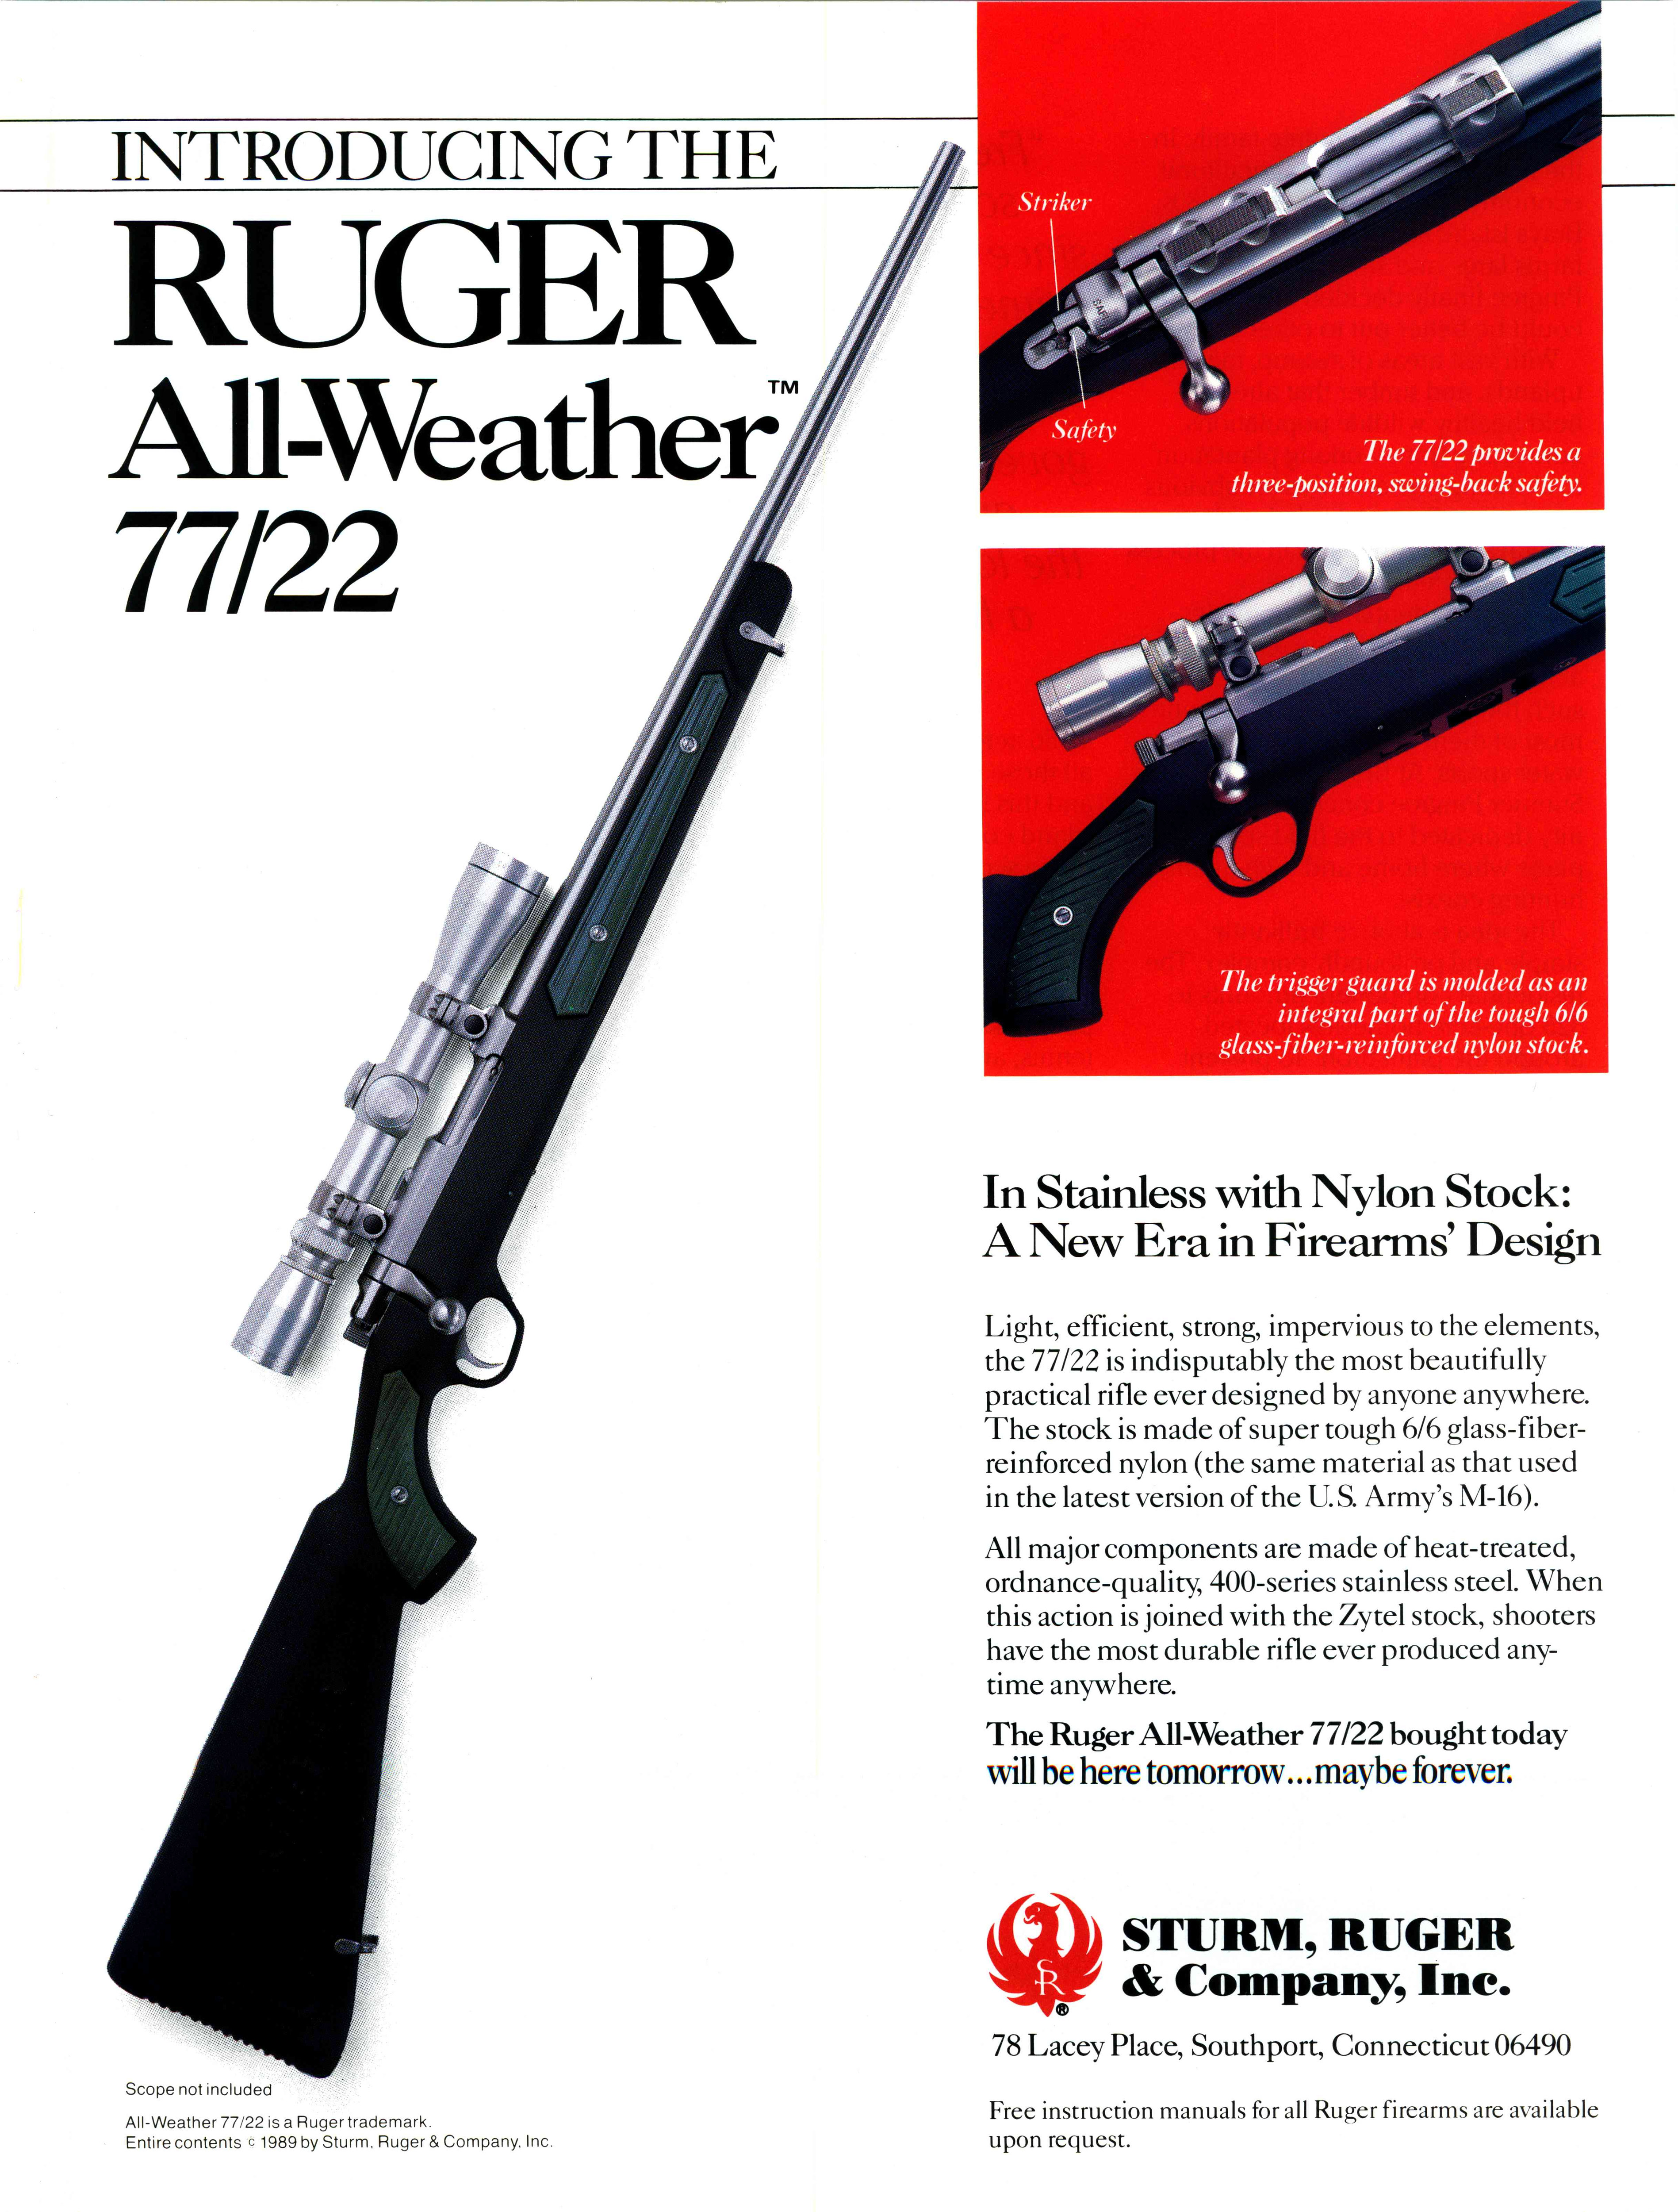 Sturm, Ruger & Company, Inc  - All-Weather 77/22